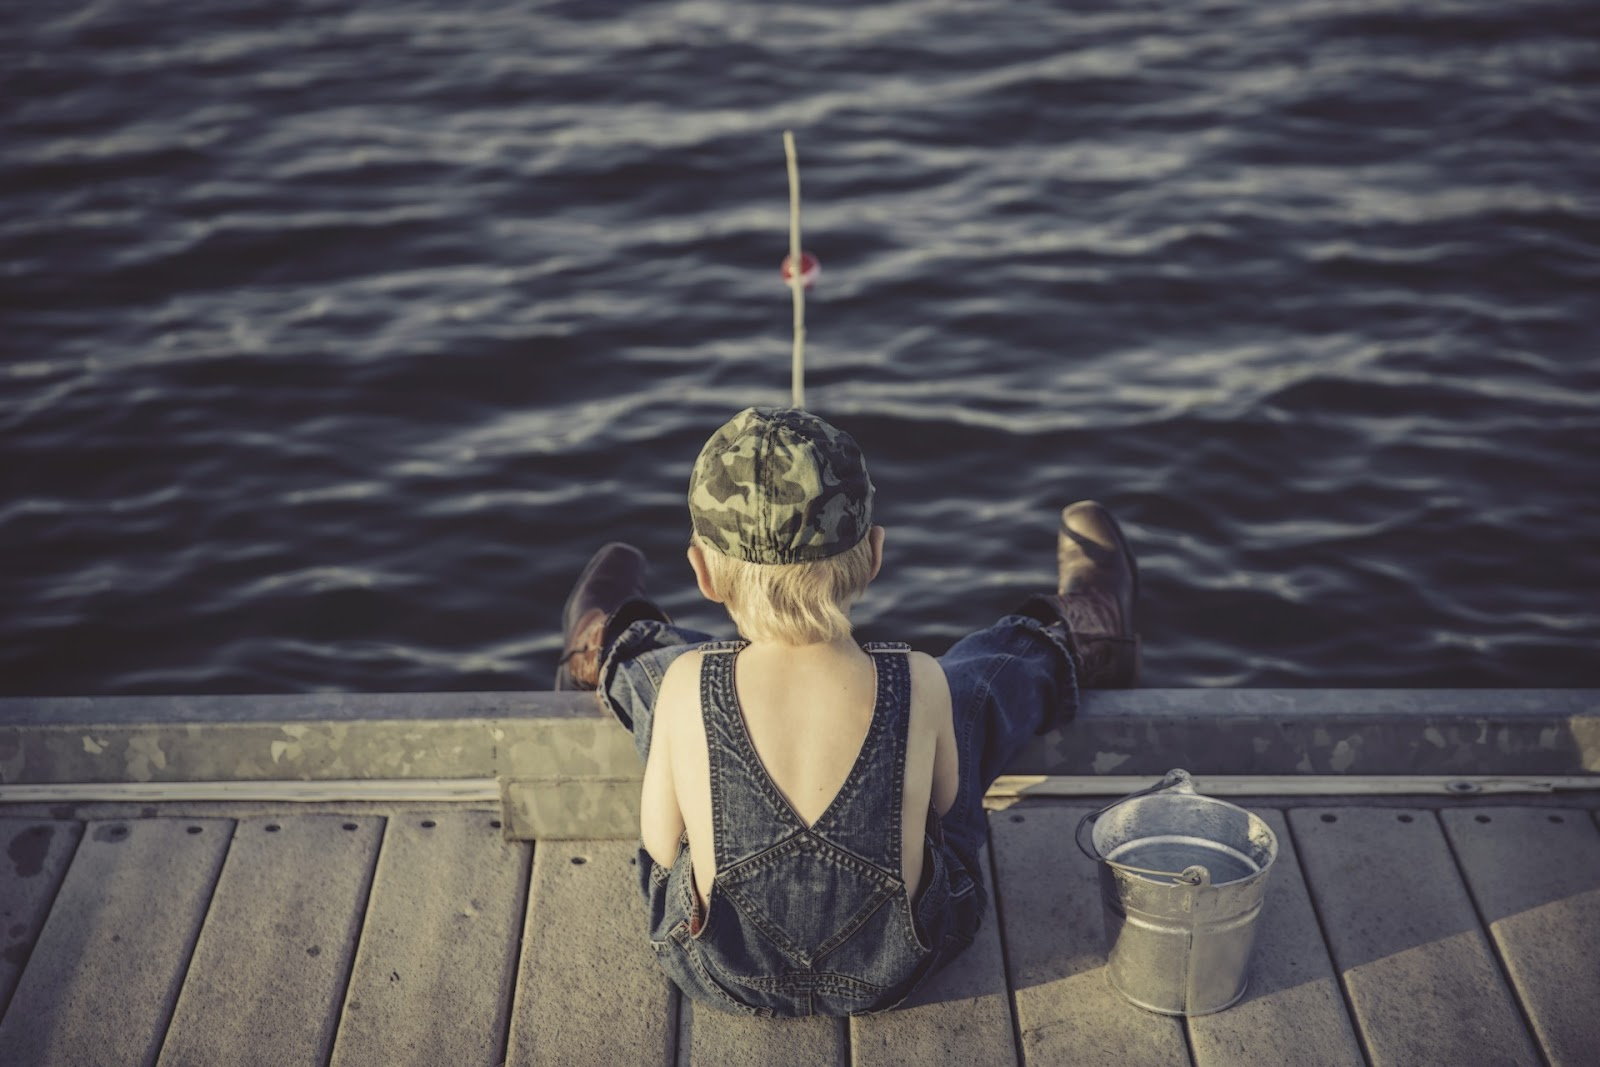 Boy fishing from dock in Calabash, NC